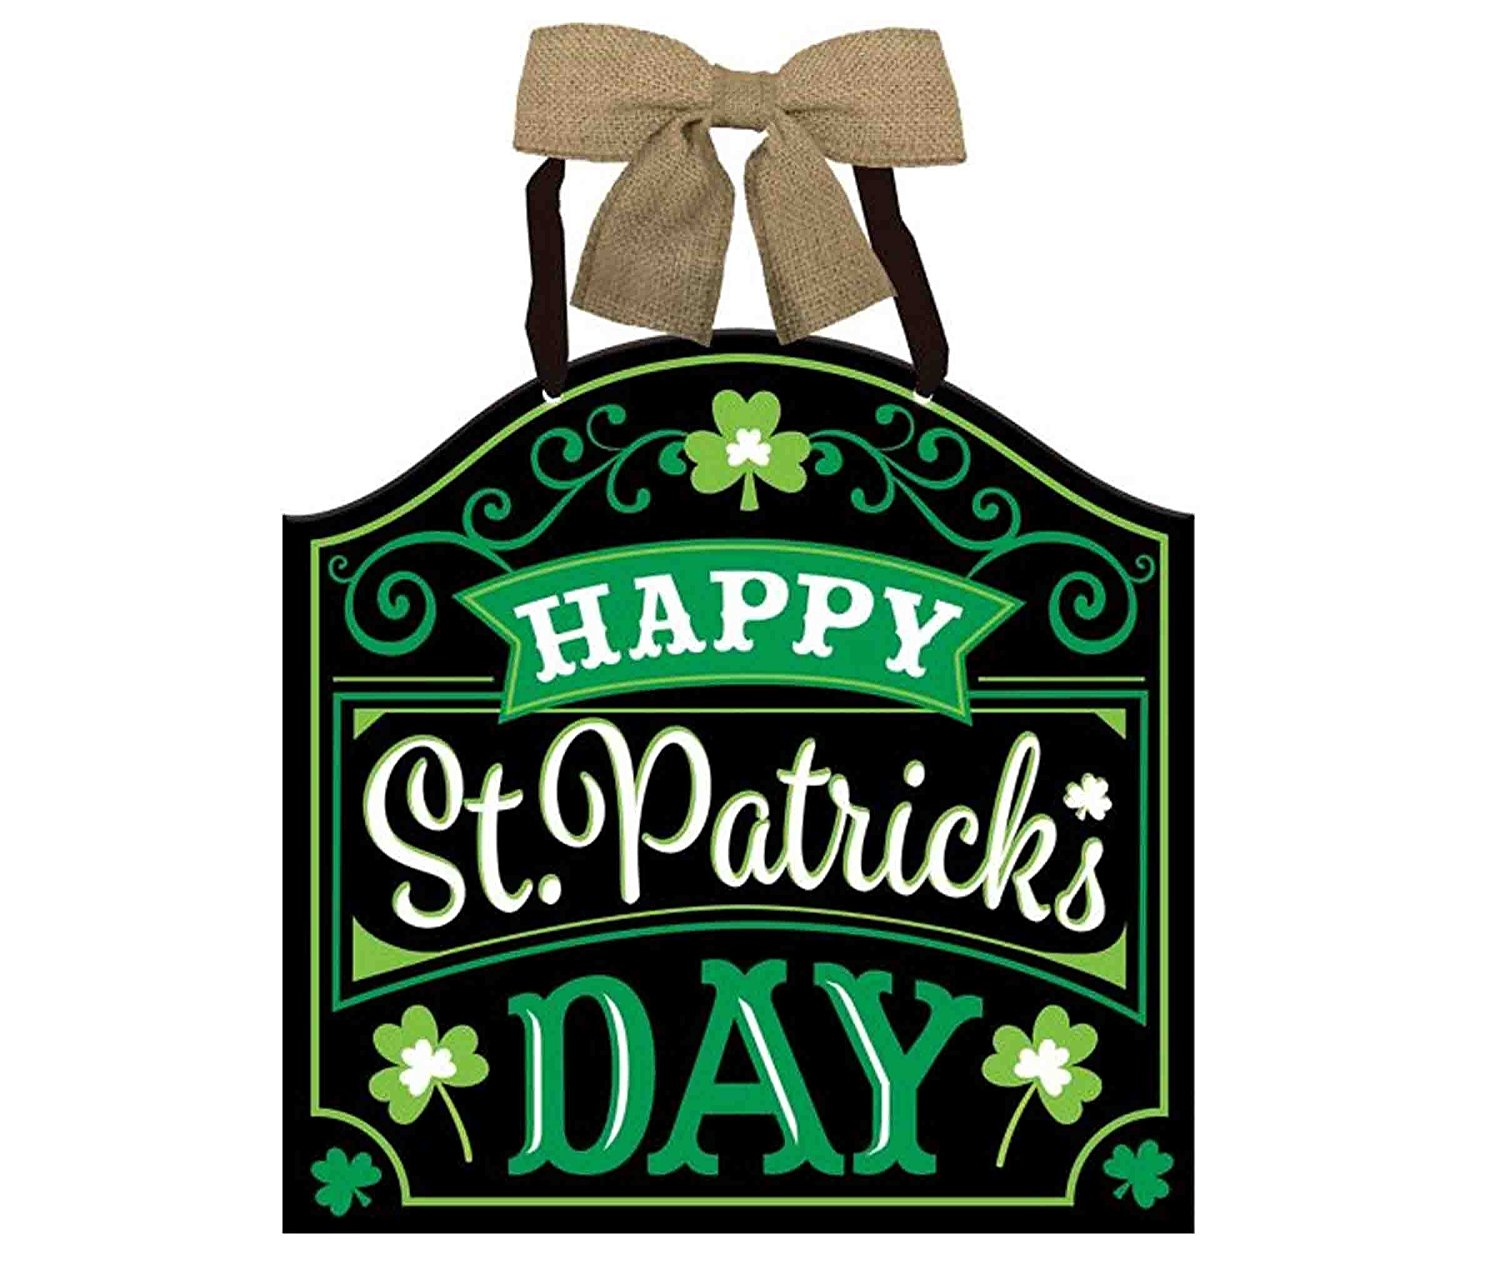 Mozlly Multipack - Amscan Happy St Patricks Day Irish Door Sign - 12 x 11.75 inch - Burlap Bow and Ribbon Hanger - Black and Green - Clovers - Home Decor Accent - Holiday Party Supplies (Pack of 6)